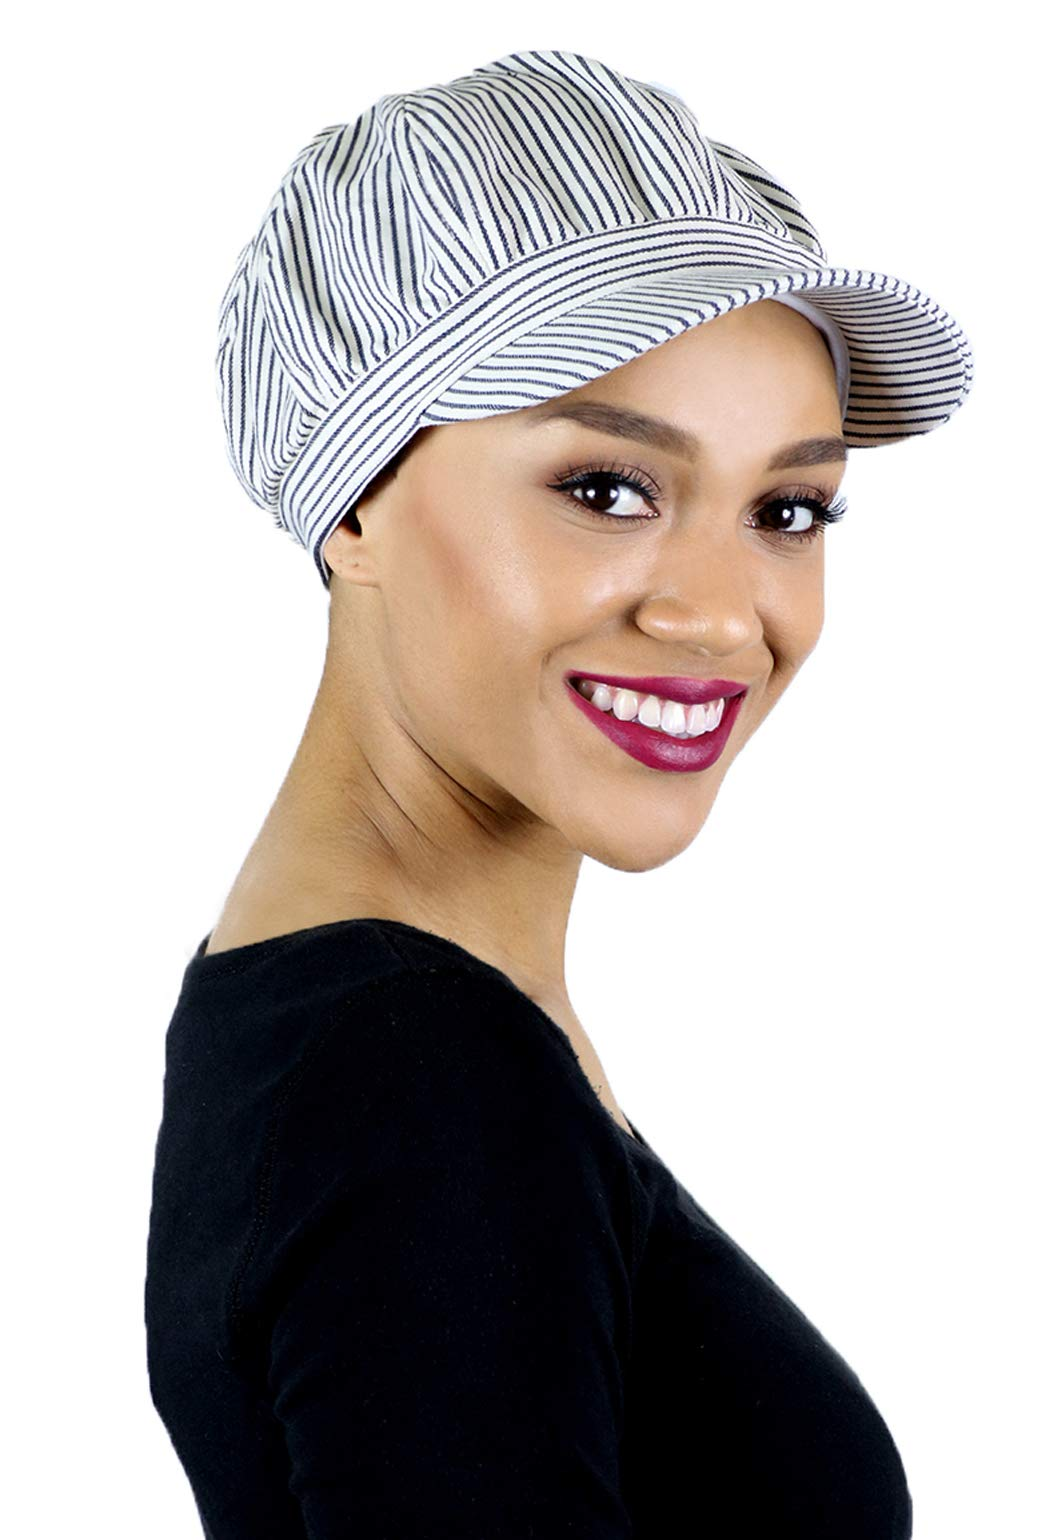 Newsboy Cap for Women Cabbie Summer Hats Ladies Large Heads Chemo Headwear Head Coverings Bristol